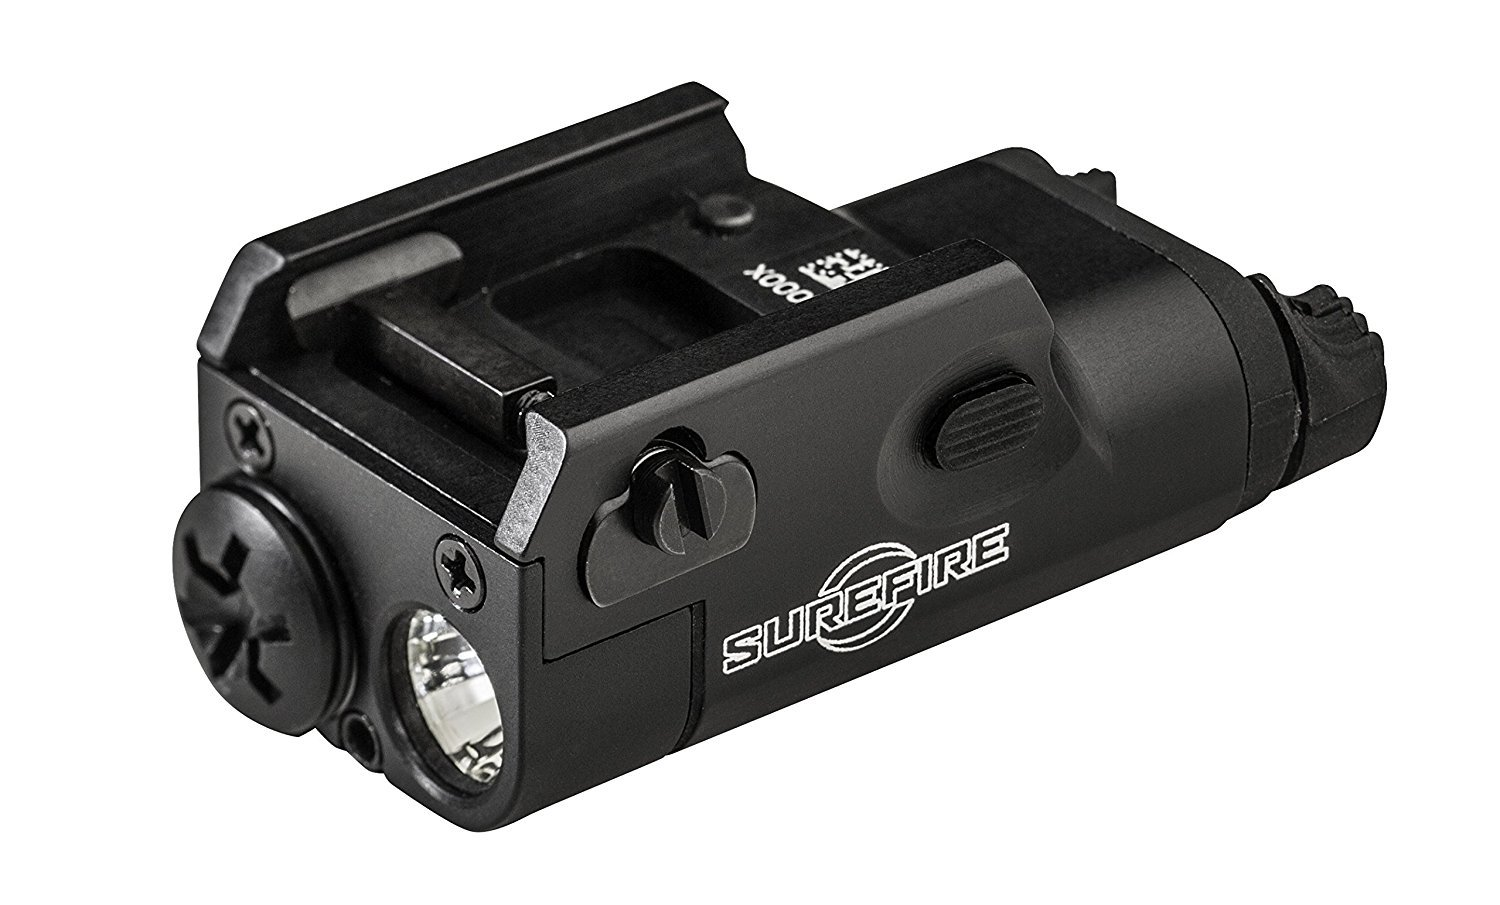 SFXC1-A Surefire XC1 CMP Pistol Light 200 Lm by Sure